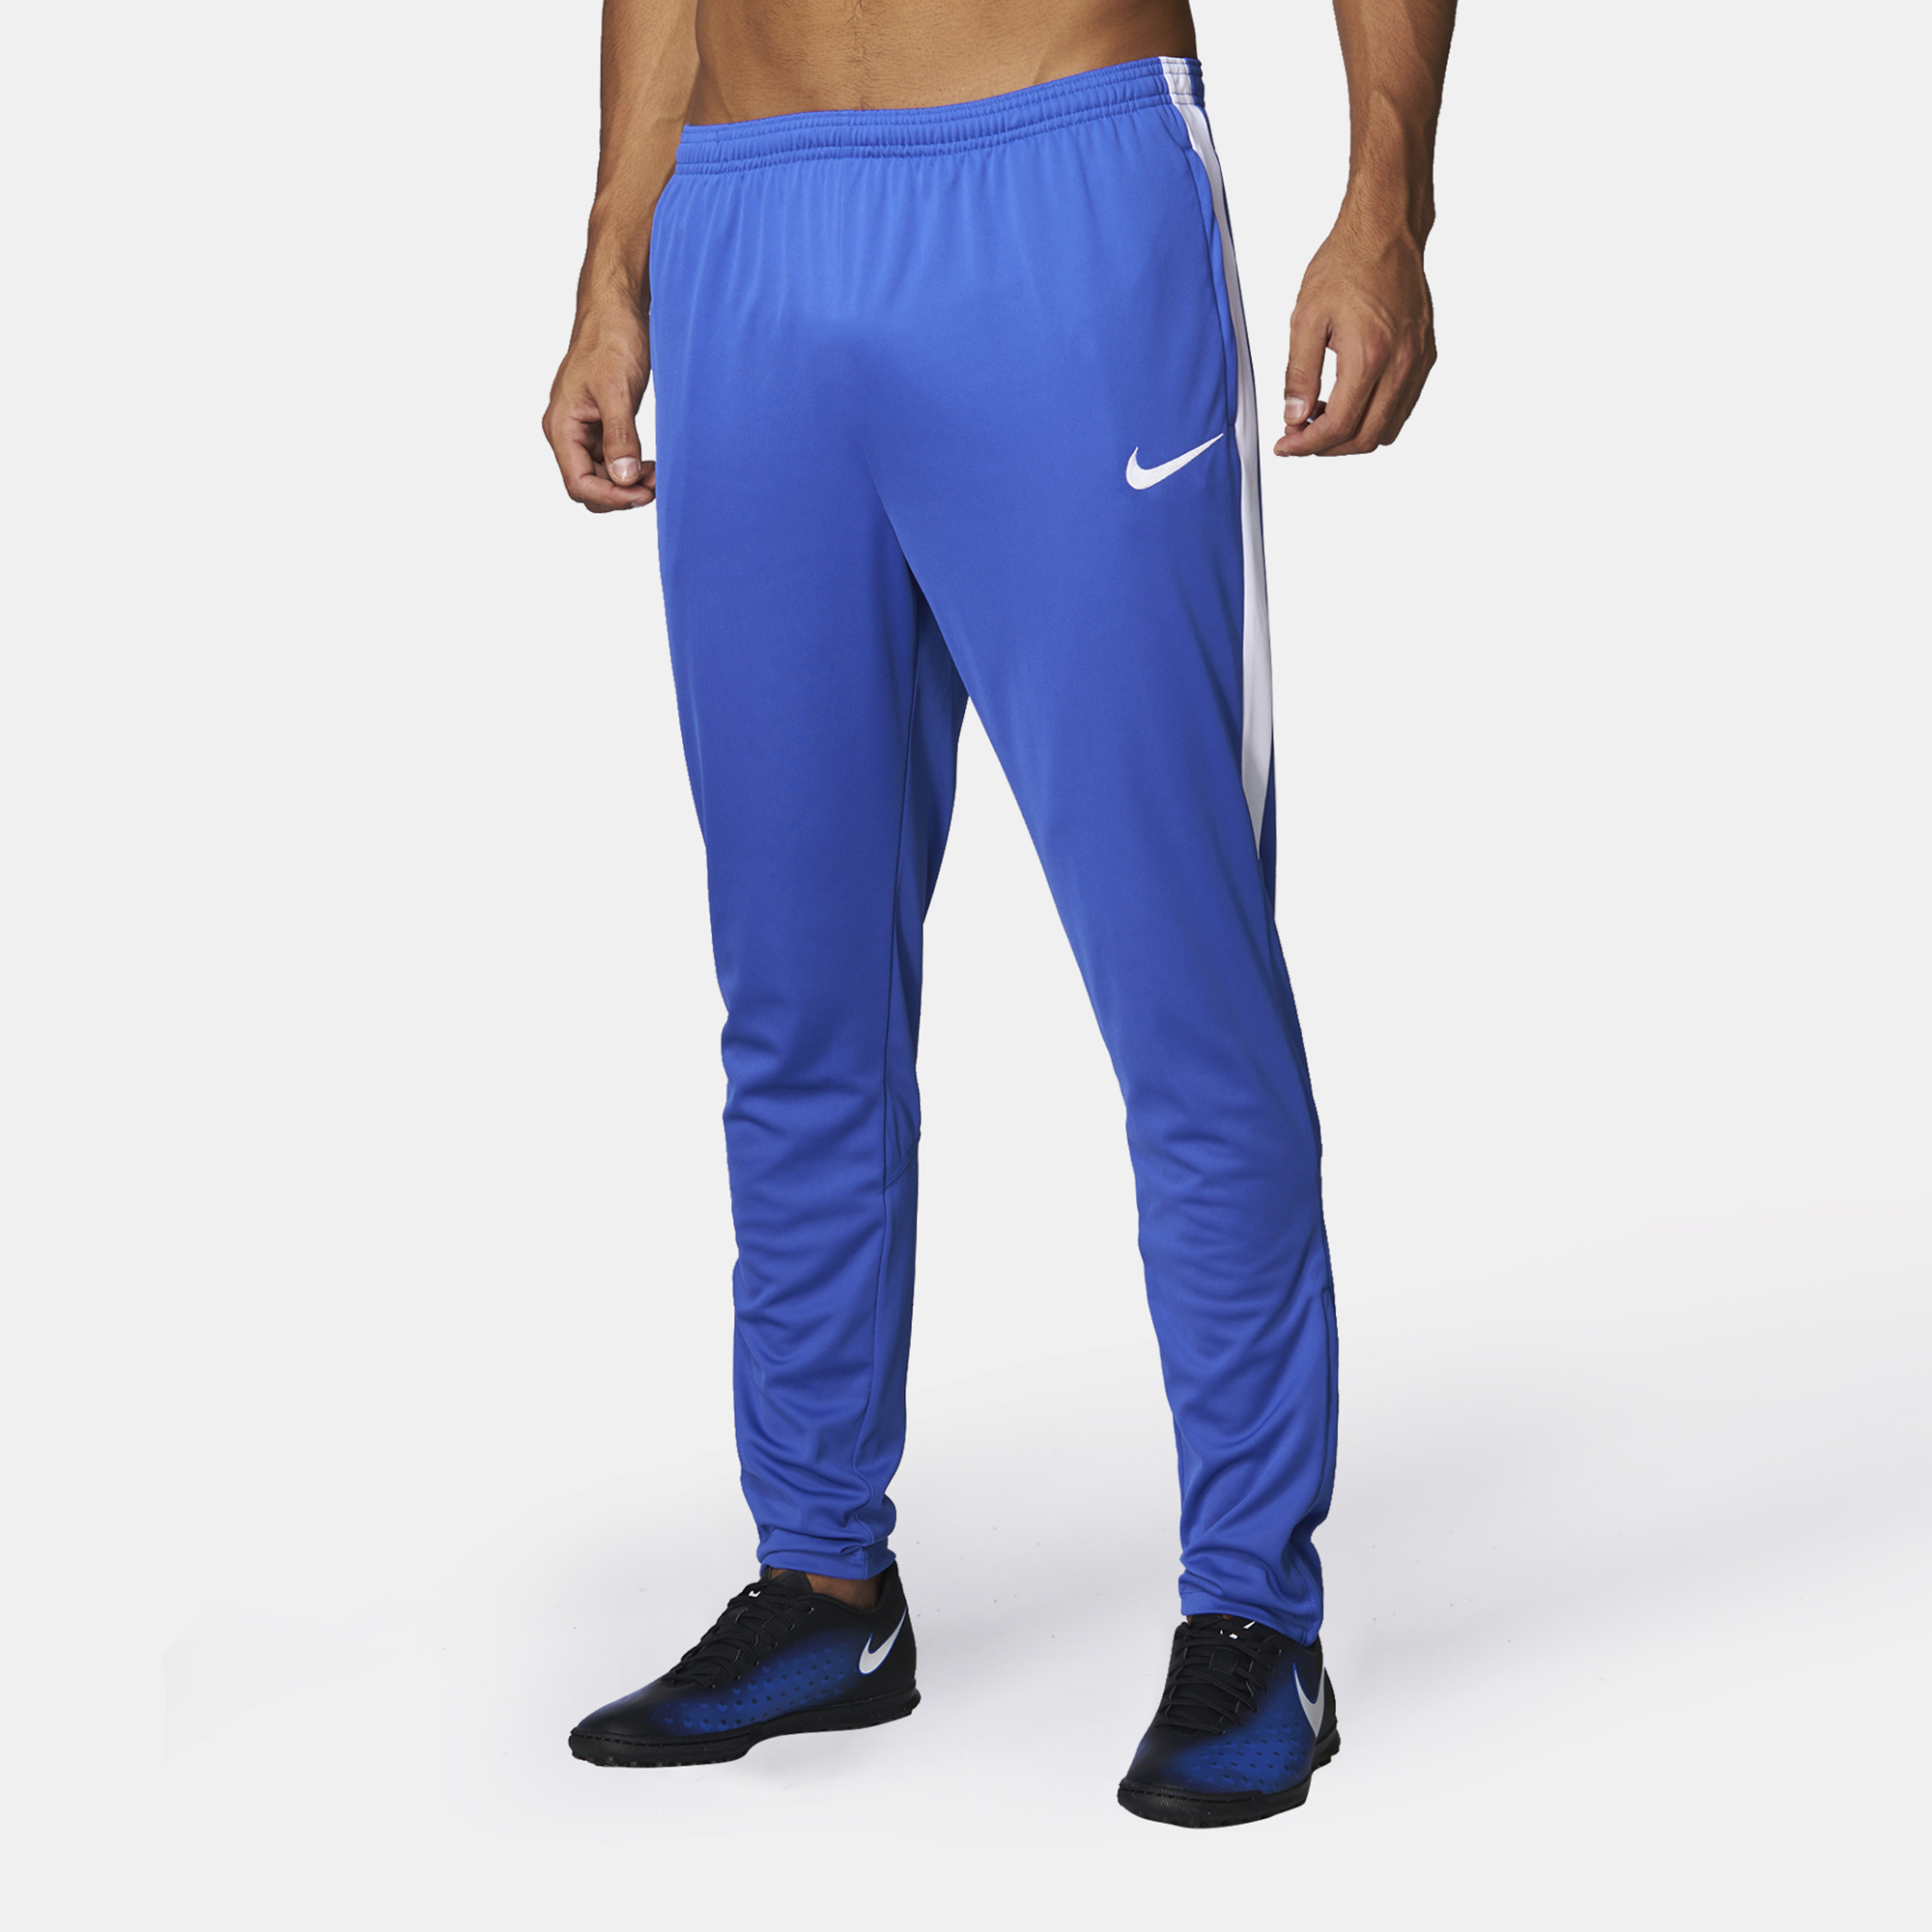 shop blue nike dry academy football sweatpants for mens by nike sss. Black Bedroom Furniture Sets. Home Design Ideas